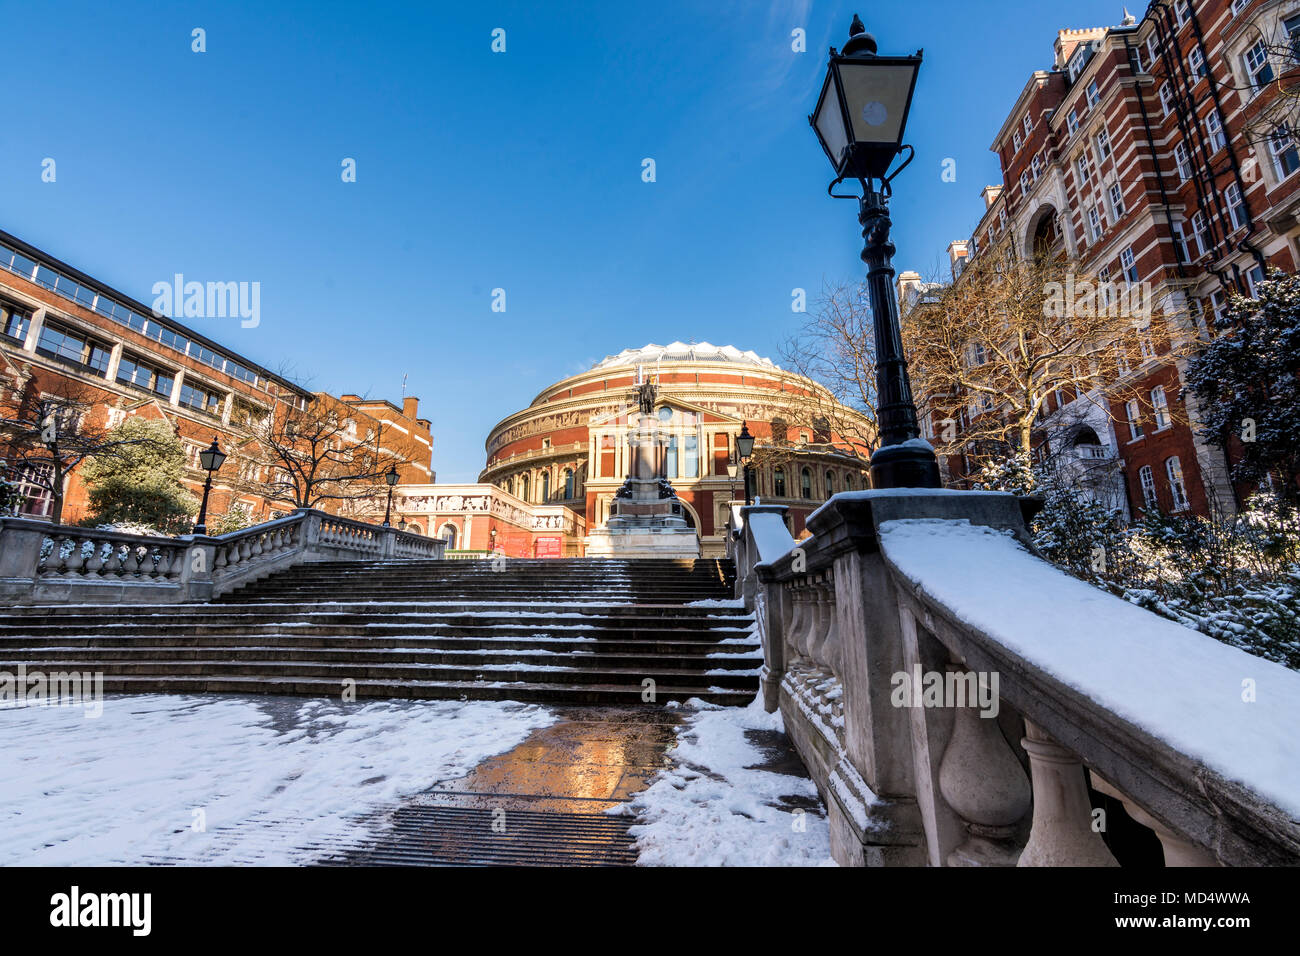 London, UK - February 2, 2018: The entrance of the Royal Albert Hall in London, UK covered in snow - Stock Image